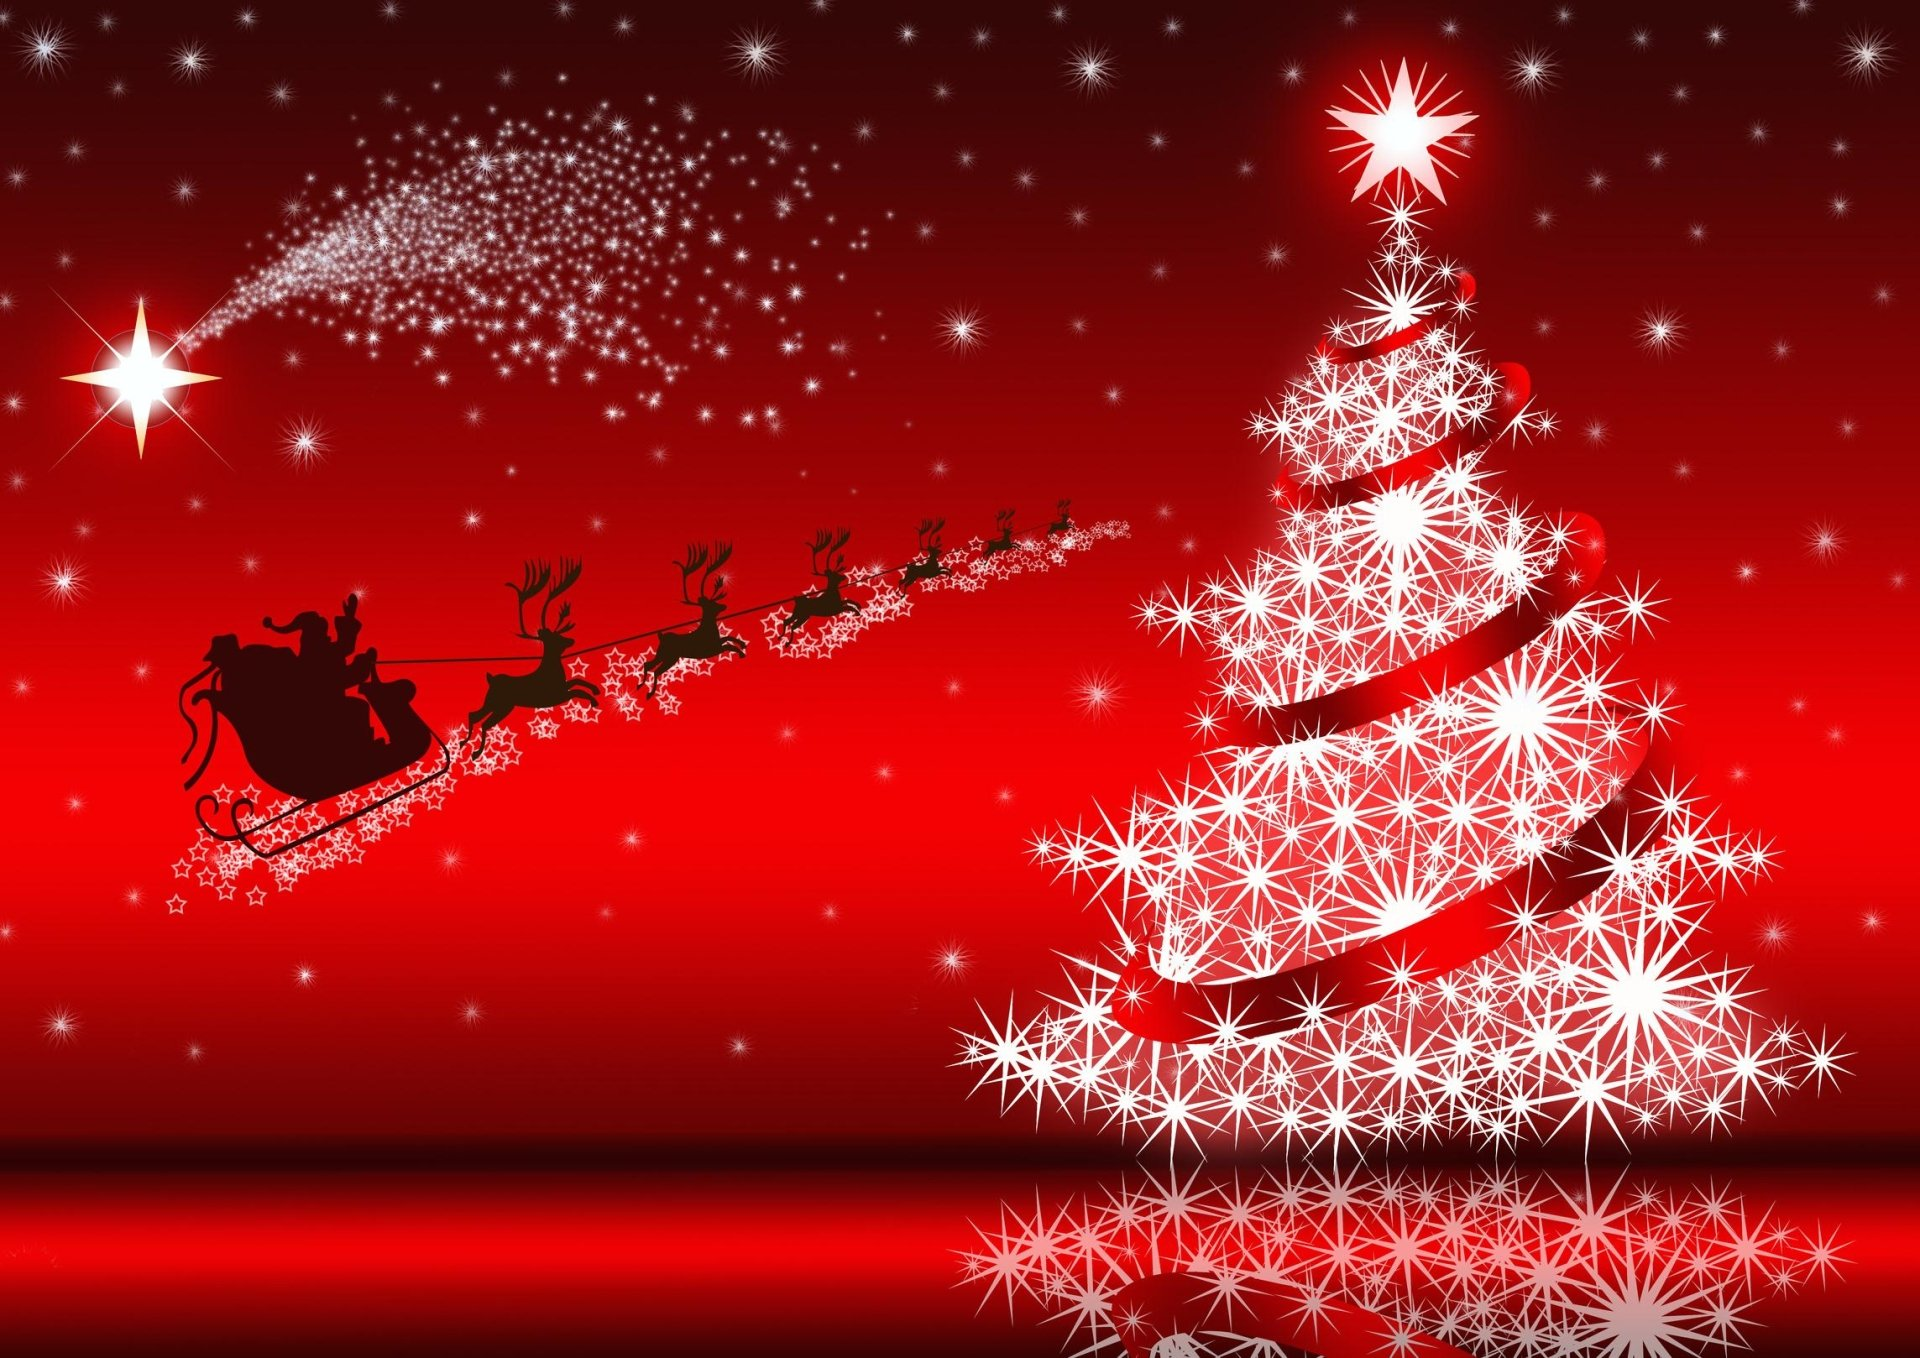 Holiday - Christmas  Red Sleigh Santa Claus Christmas Tree Reindeer Stars Wallpaper